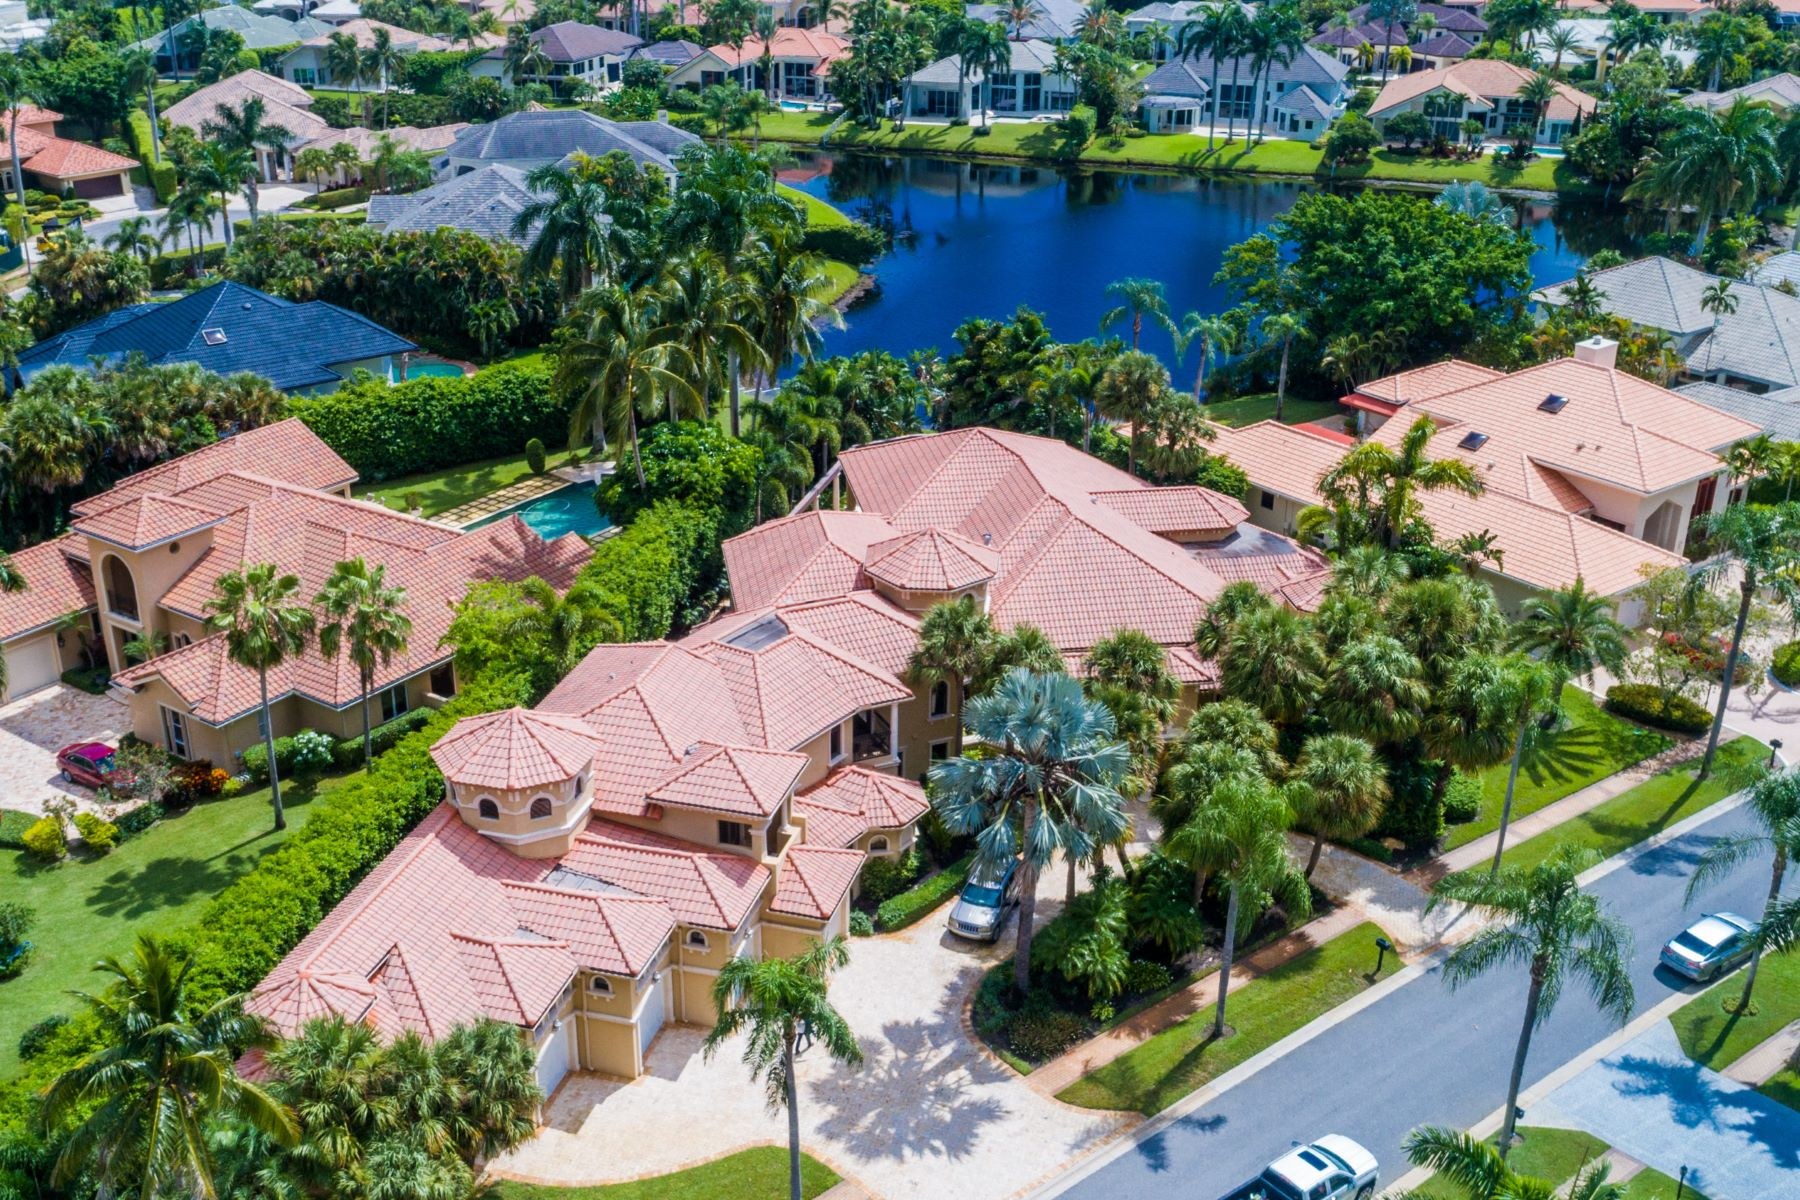 Single Family Home for Active at 6915 Queenferry Circle 6915 Queenferry Circle Boca Raton, Florida 33496 United States